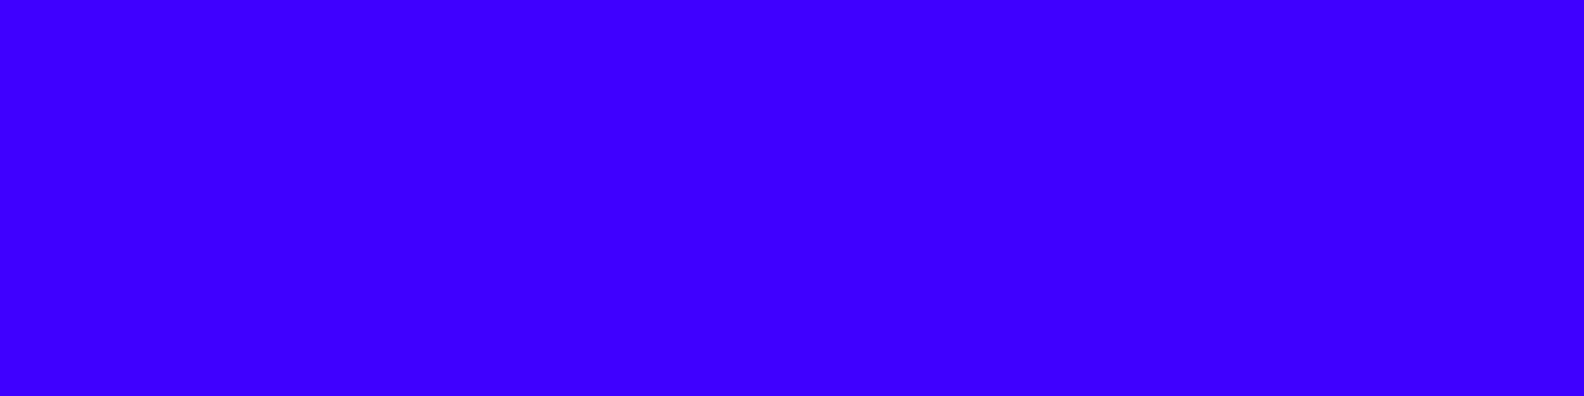 1584x396 Electric Ultramarine Solid Color Background